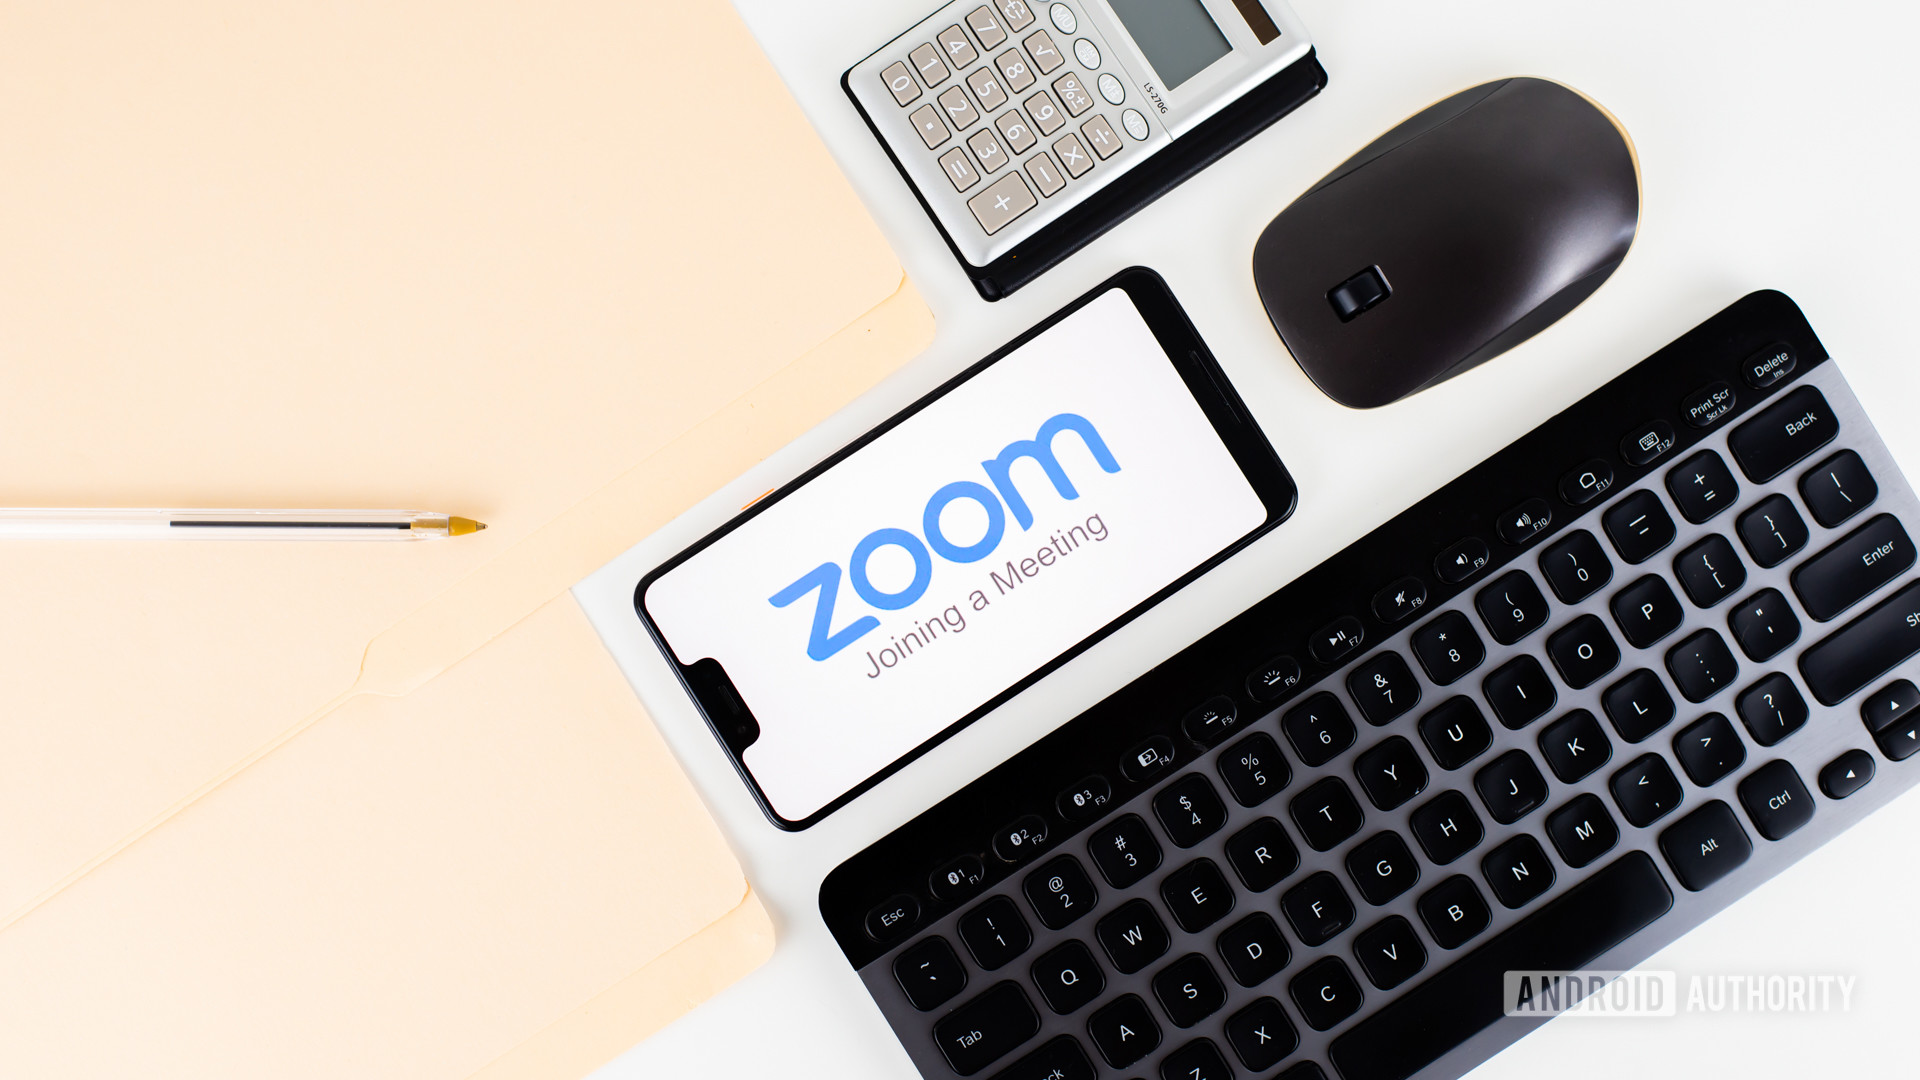 Zoom-Meetings-on-smartphone-next-to-office-equipment-stock-2